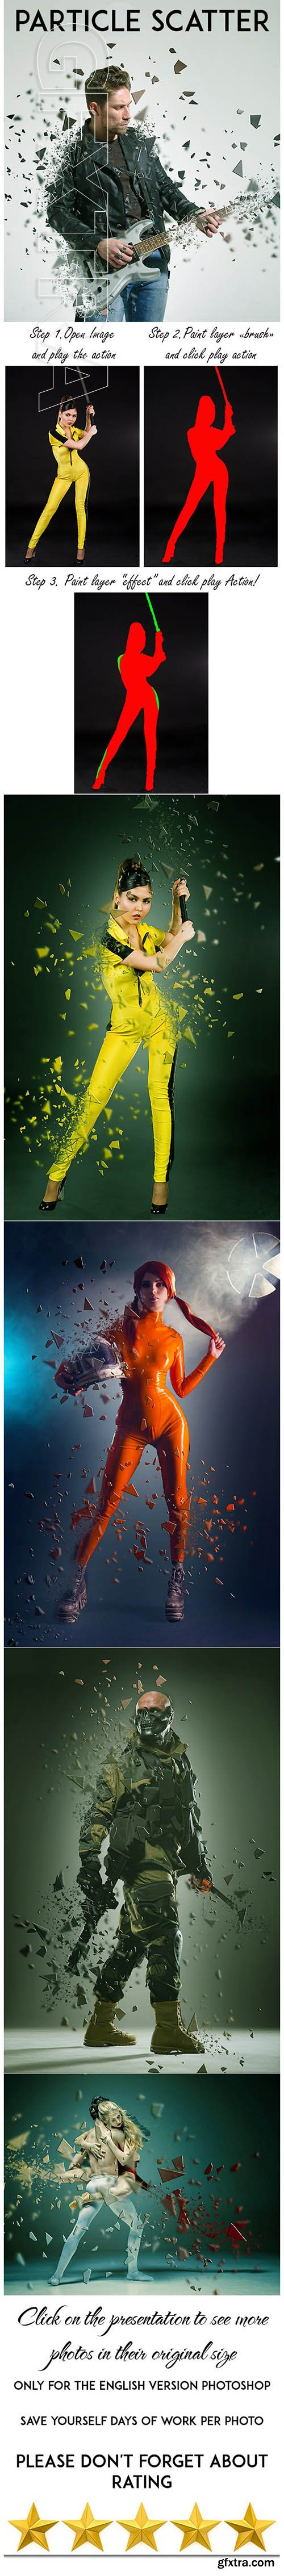 GraphicRiver - Particle Scatter Photoshop Action 25254006